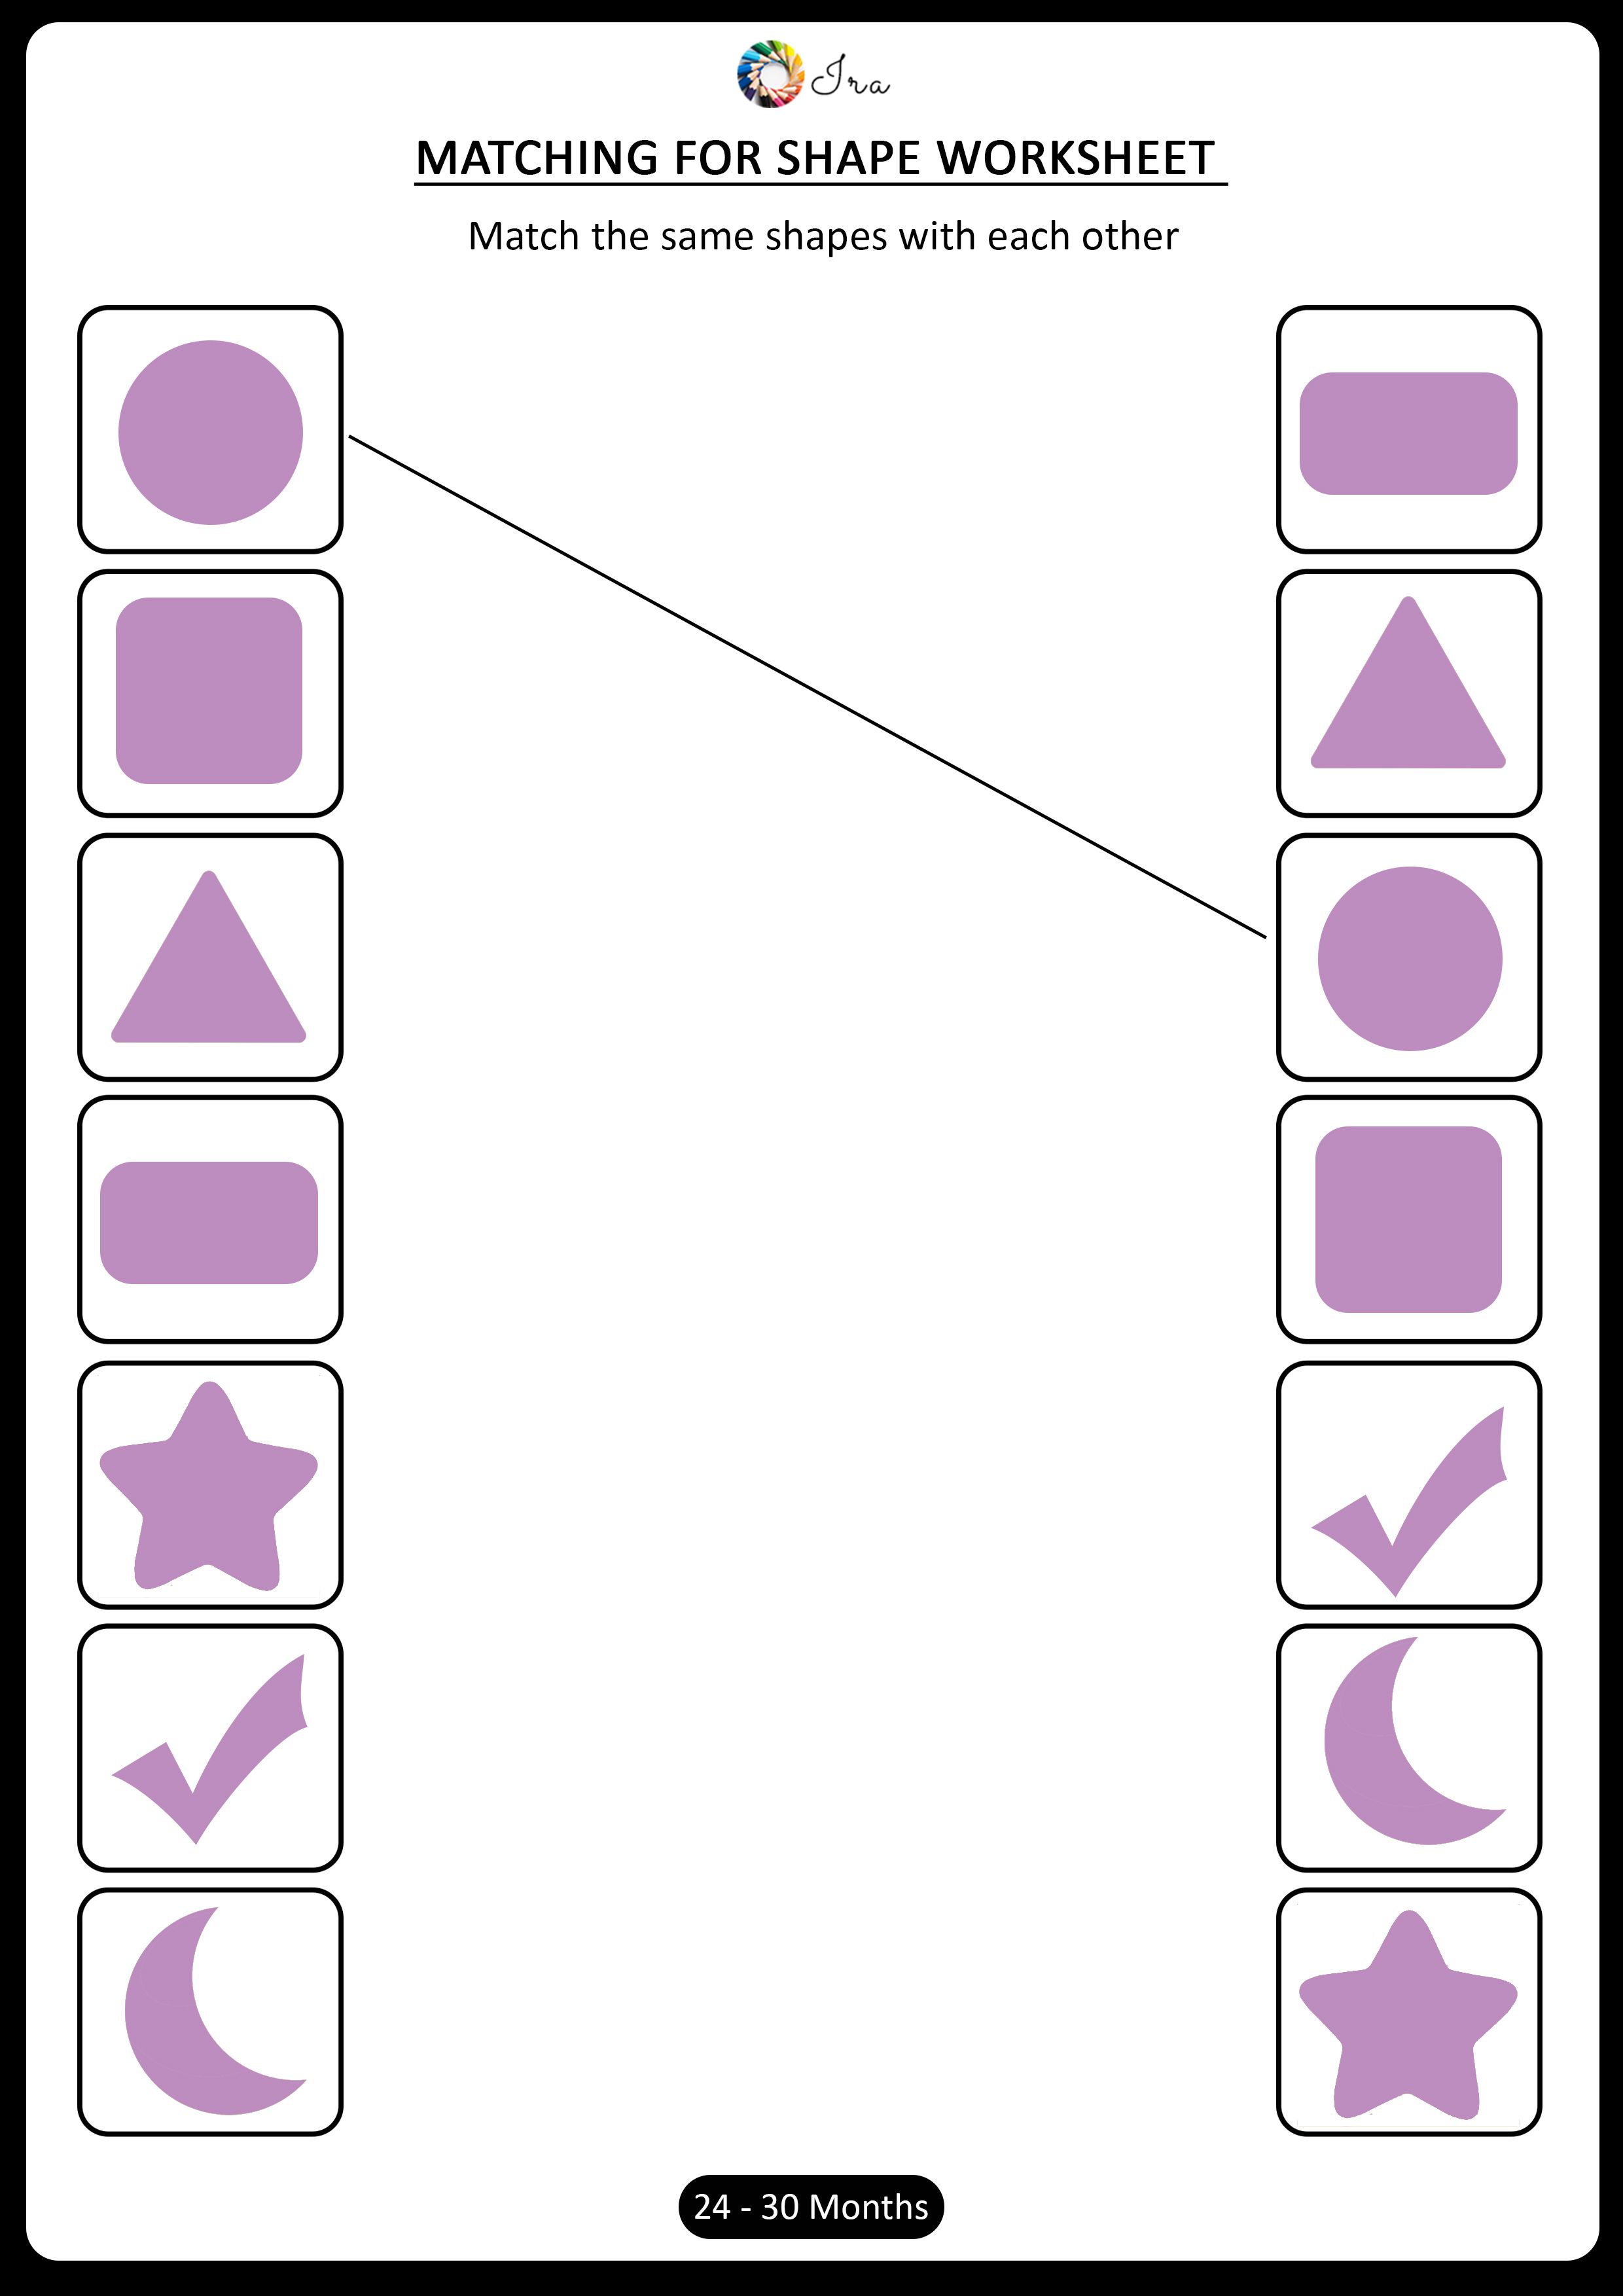 Free Printable Matching Shapes Worksheets For 24 30